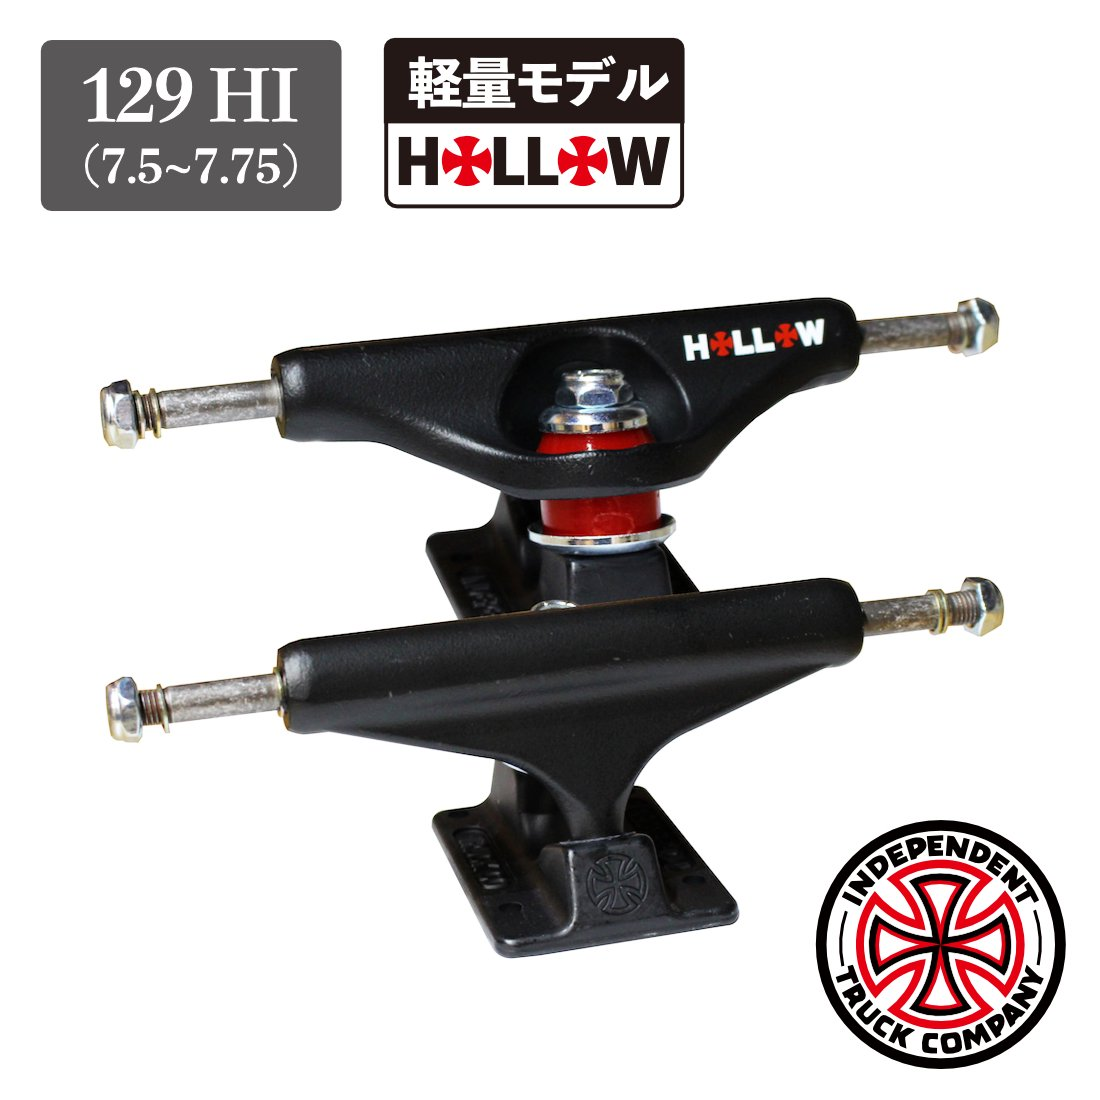 【INDEPENDENT】 Forged Hollow Standard -129